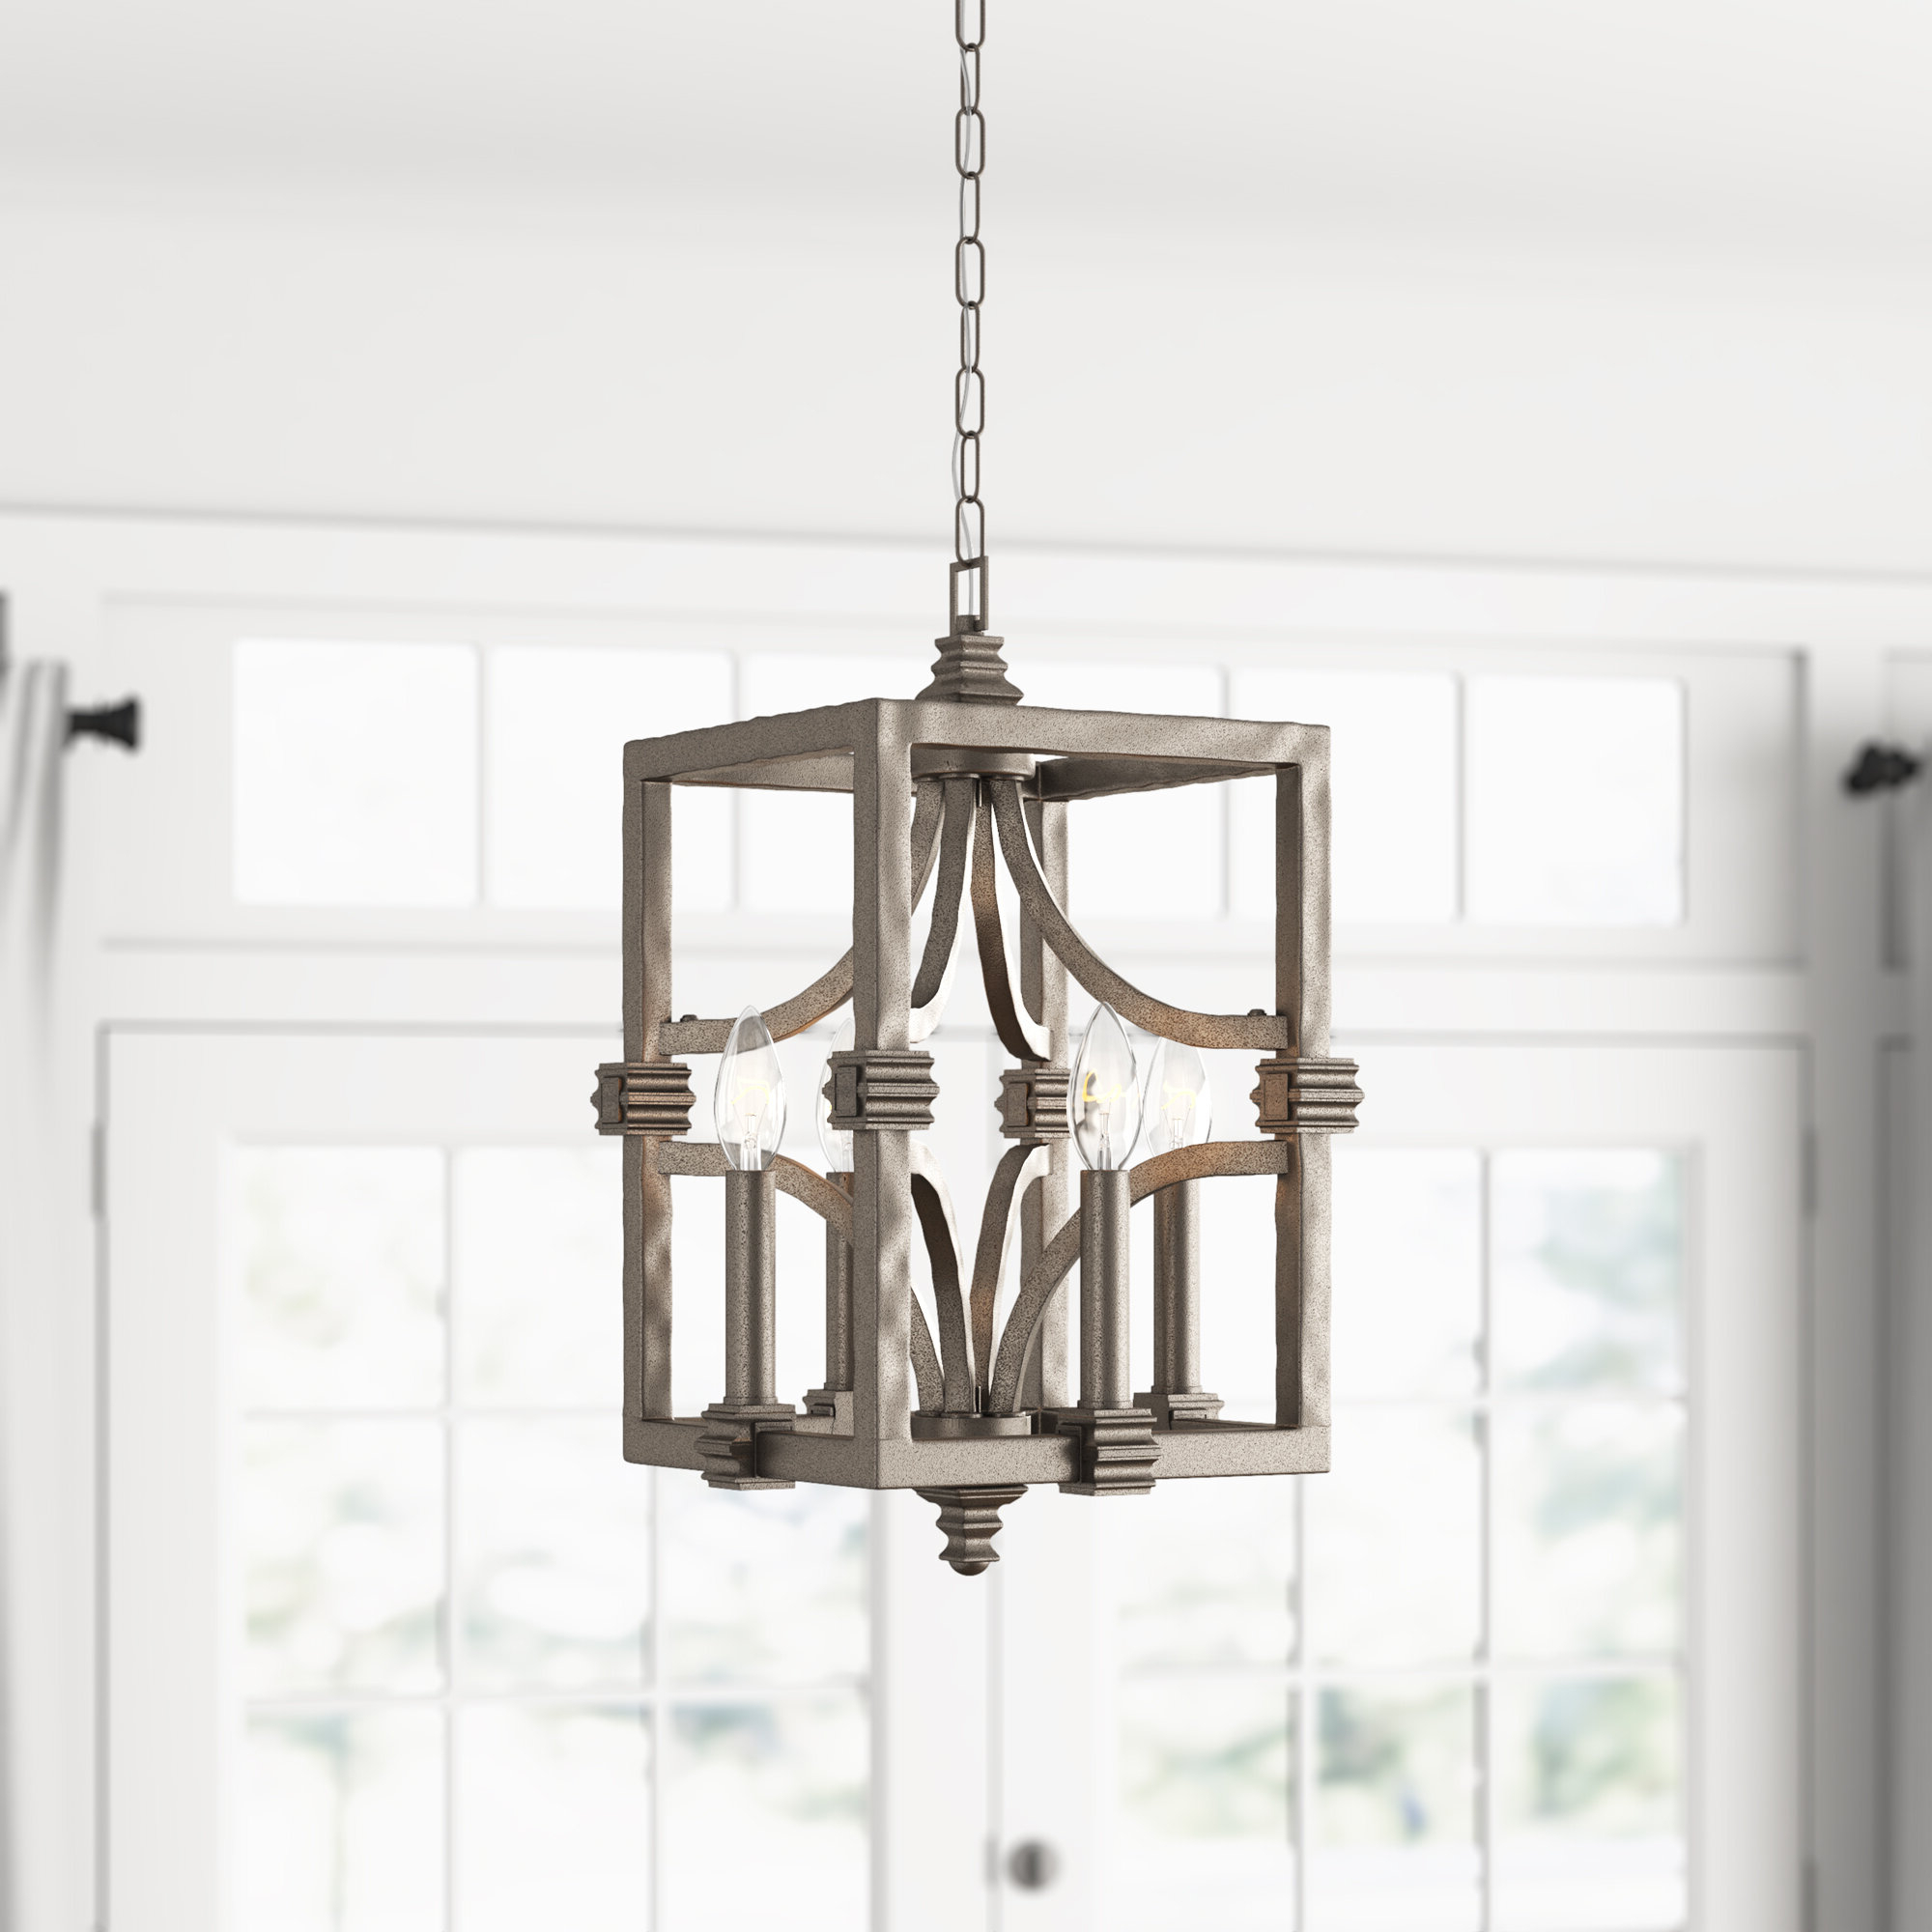 Freeburg 4 Light Lantern Square / Rectangle Pendant Intended For Latest Kierra 4 Light Unique / Statement Chandeliers (View 20 of 25)